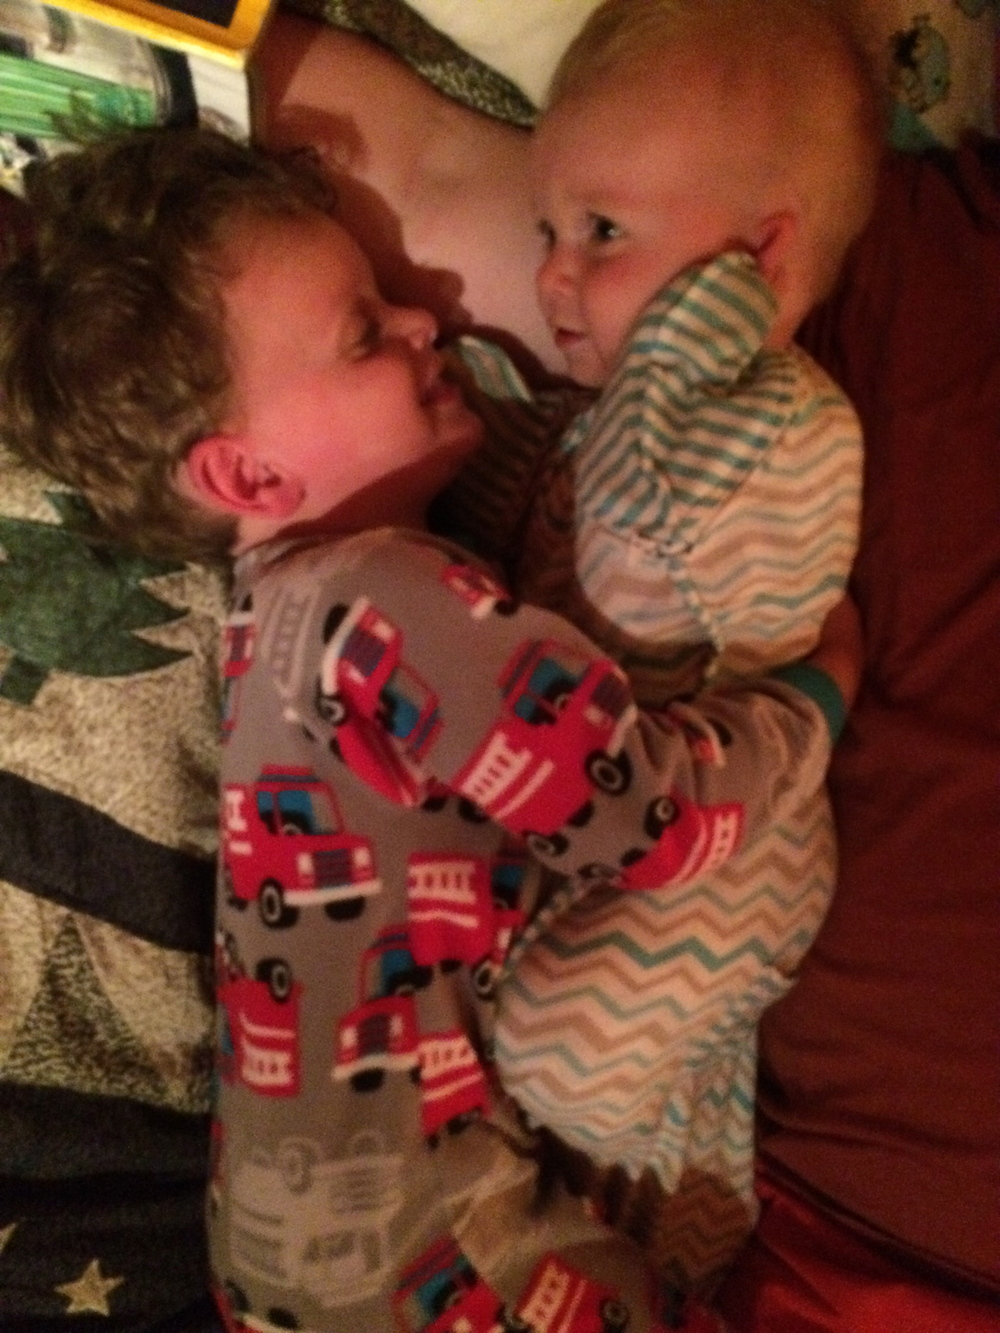 Just before bed, cuddled up next to Dad. These boys increasingly adore each other!